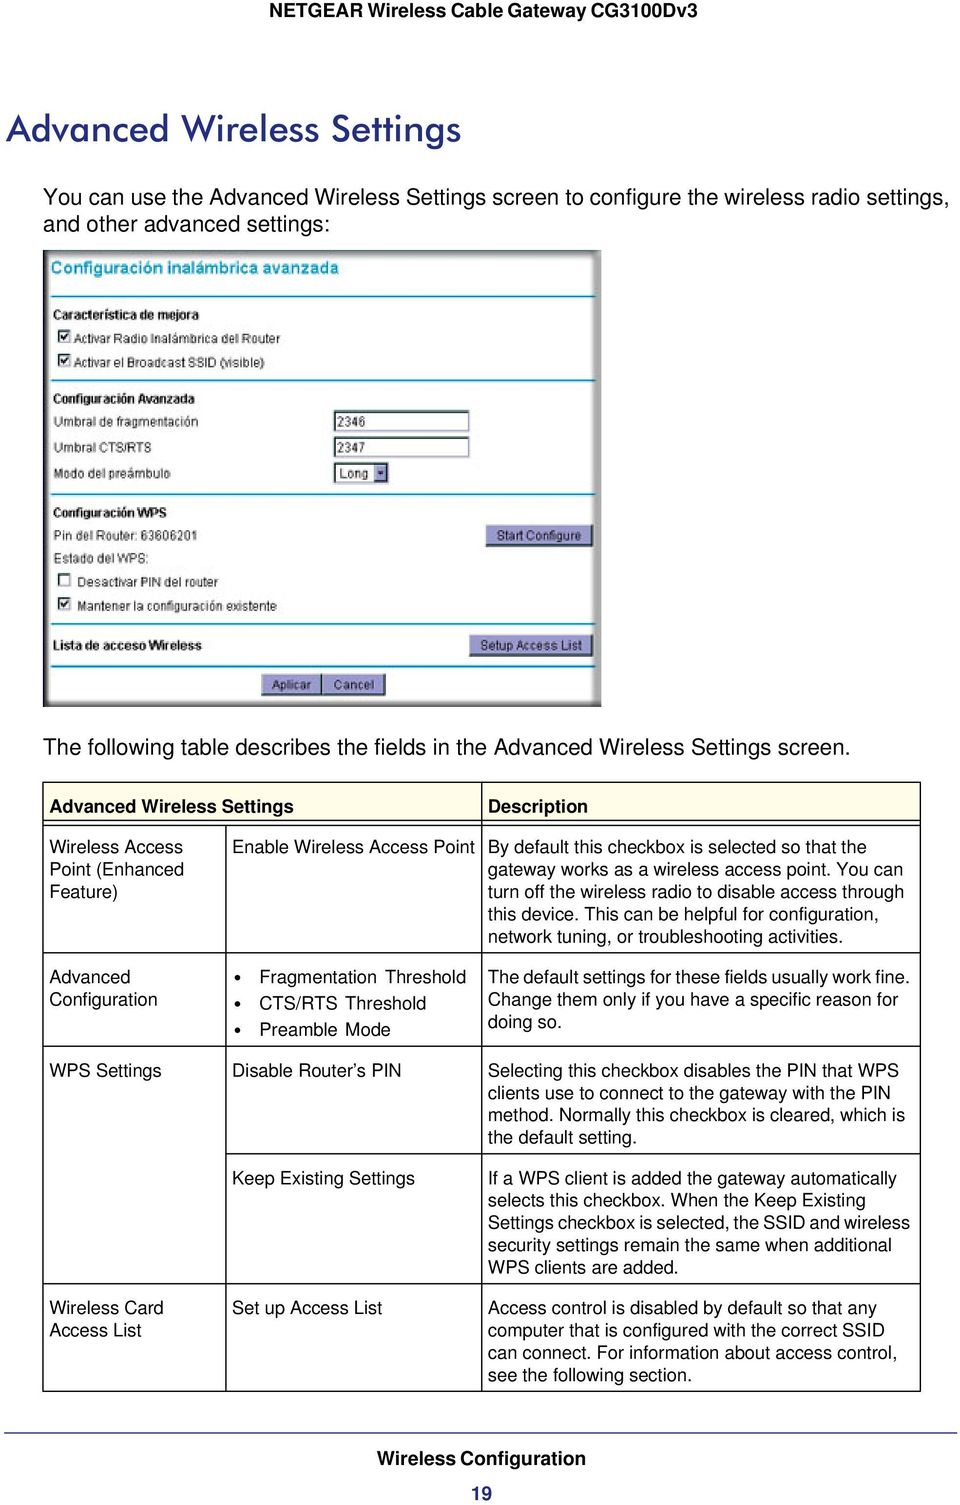 Advanced Wireless Settings Description Wireless Access Point (Enhanced Feature) Enable Wireless Access Point By default this checkbox is selected so that the gateway works as a wireless access point.